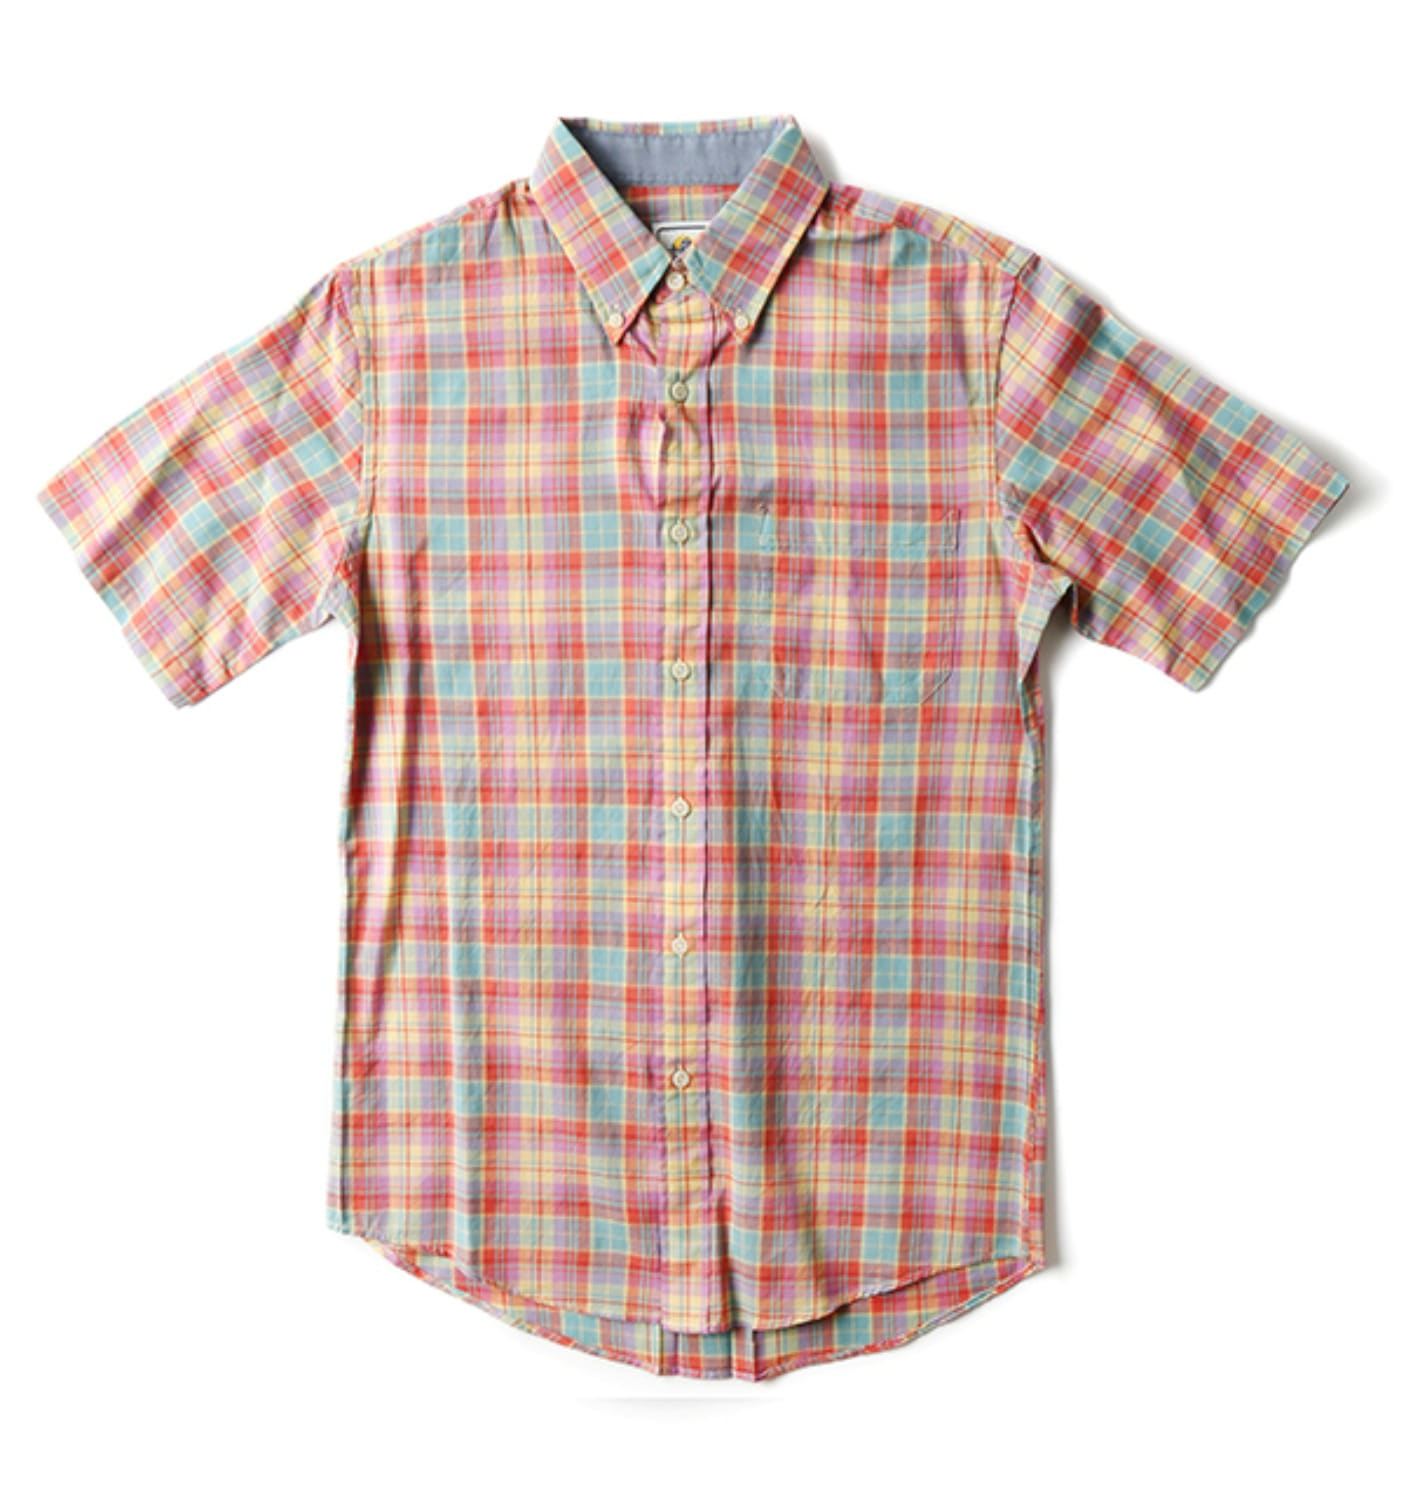 S/S Fitted Seaside BD Shirt Pink